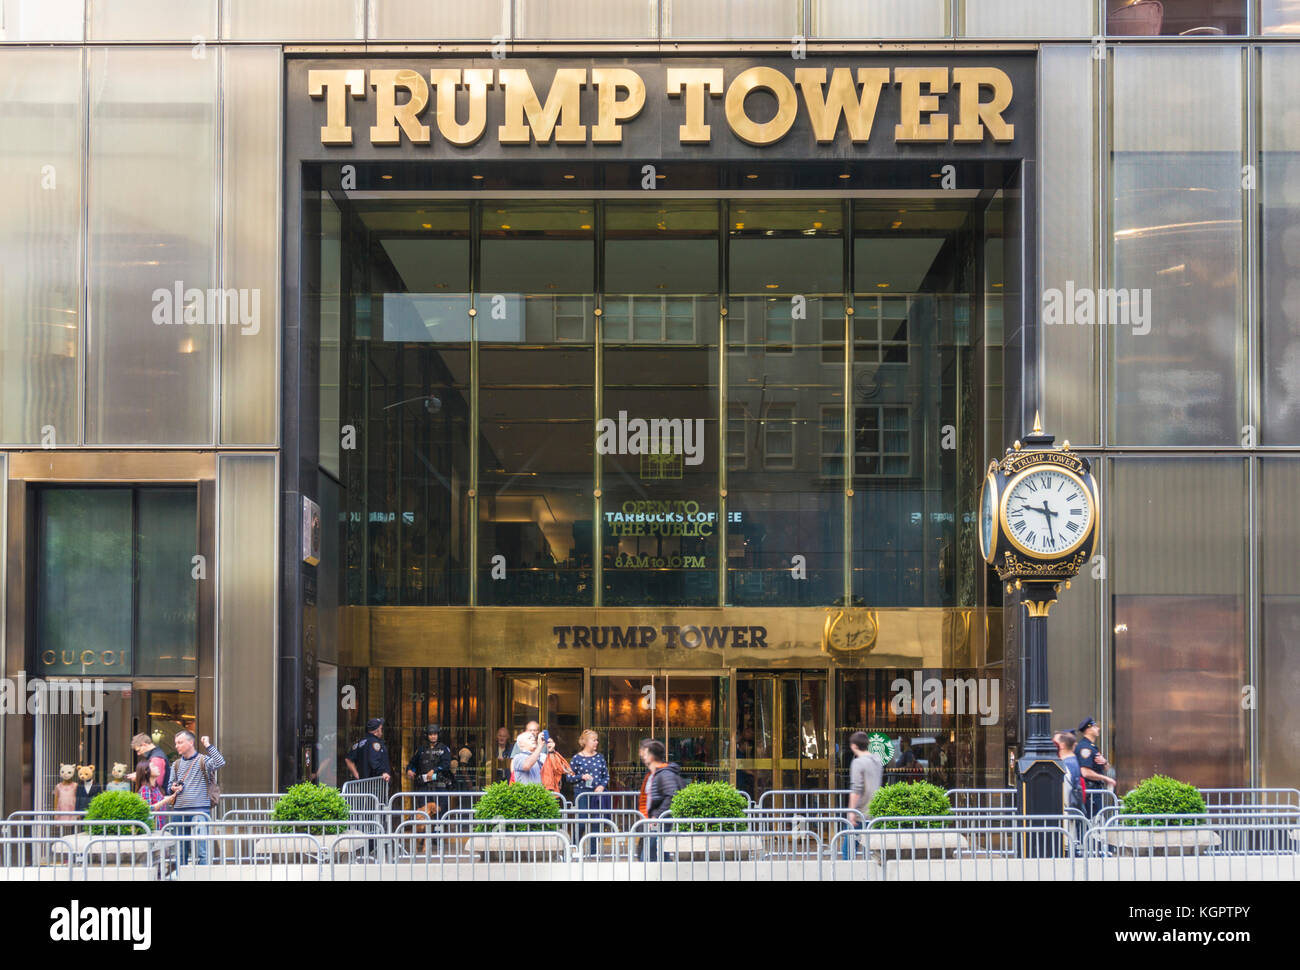 trump tower New york usa new york trump tower exterior facade with security barriers Midtown Manhattan new york - Stock Image